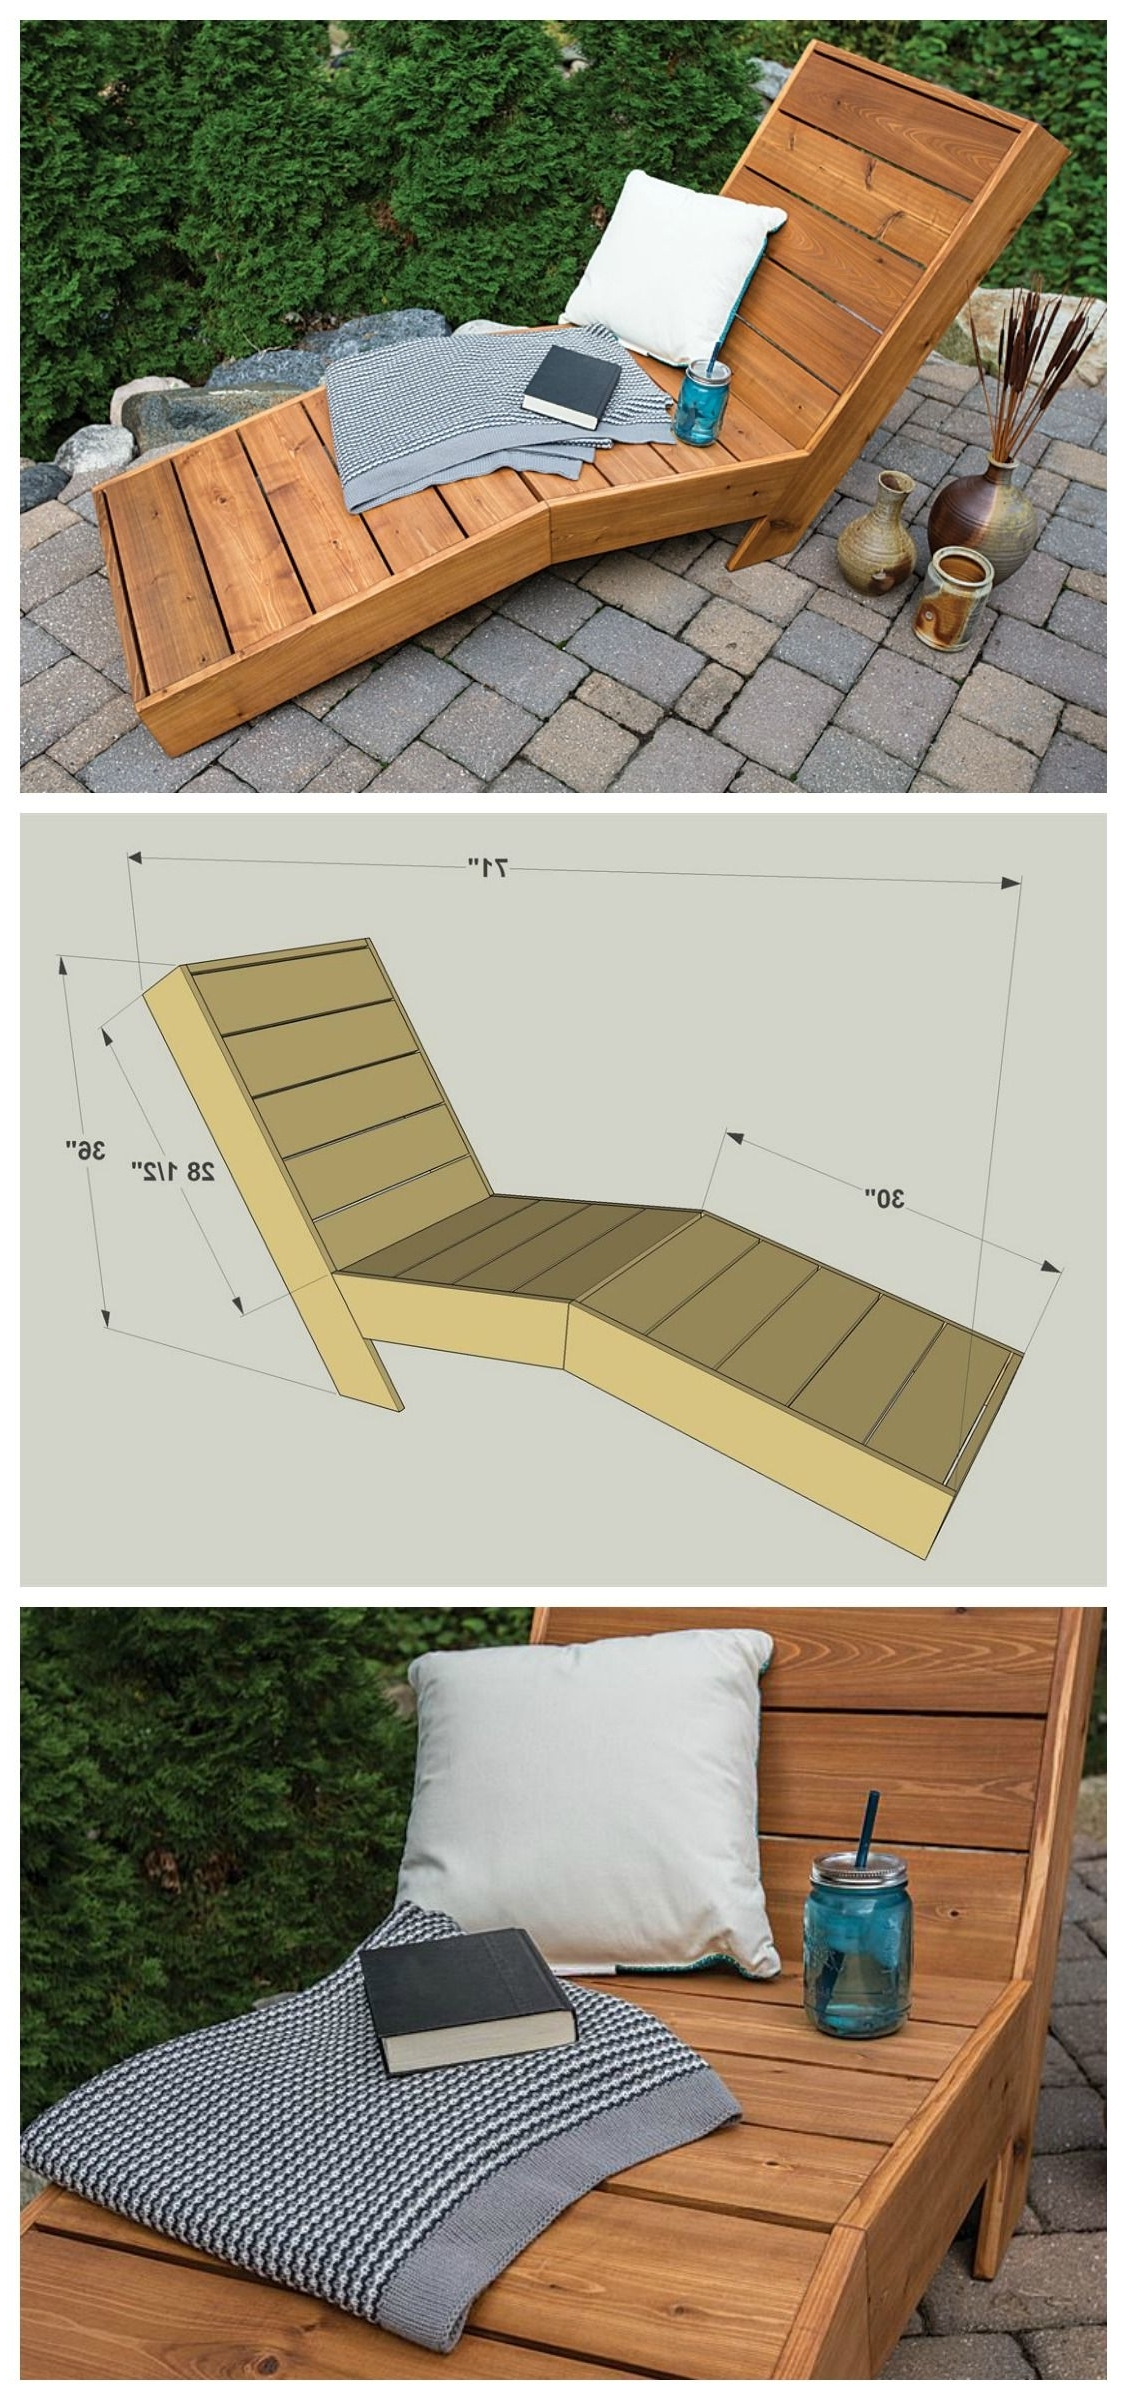 Well Known Diy Outdoor Chaise Lounge :: Free Plans At Buildsomething Within Diy Outdoor Chaise Lounge Chairs (View 12 of 15)